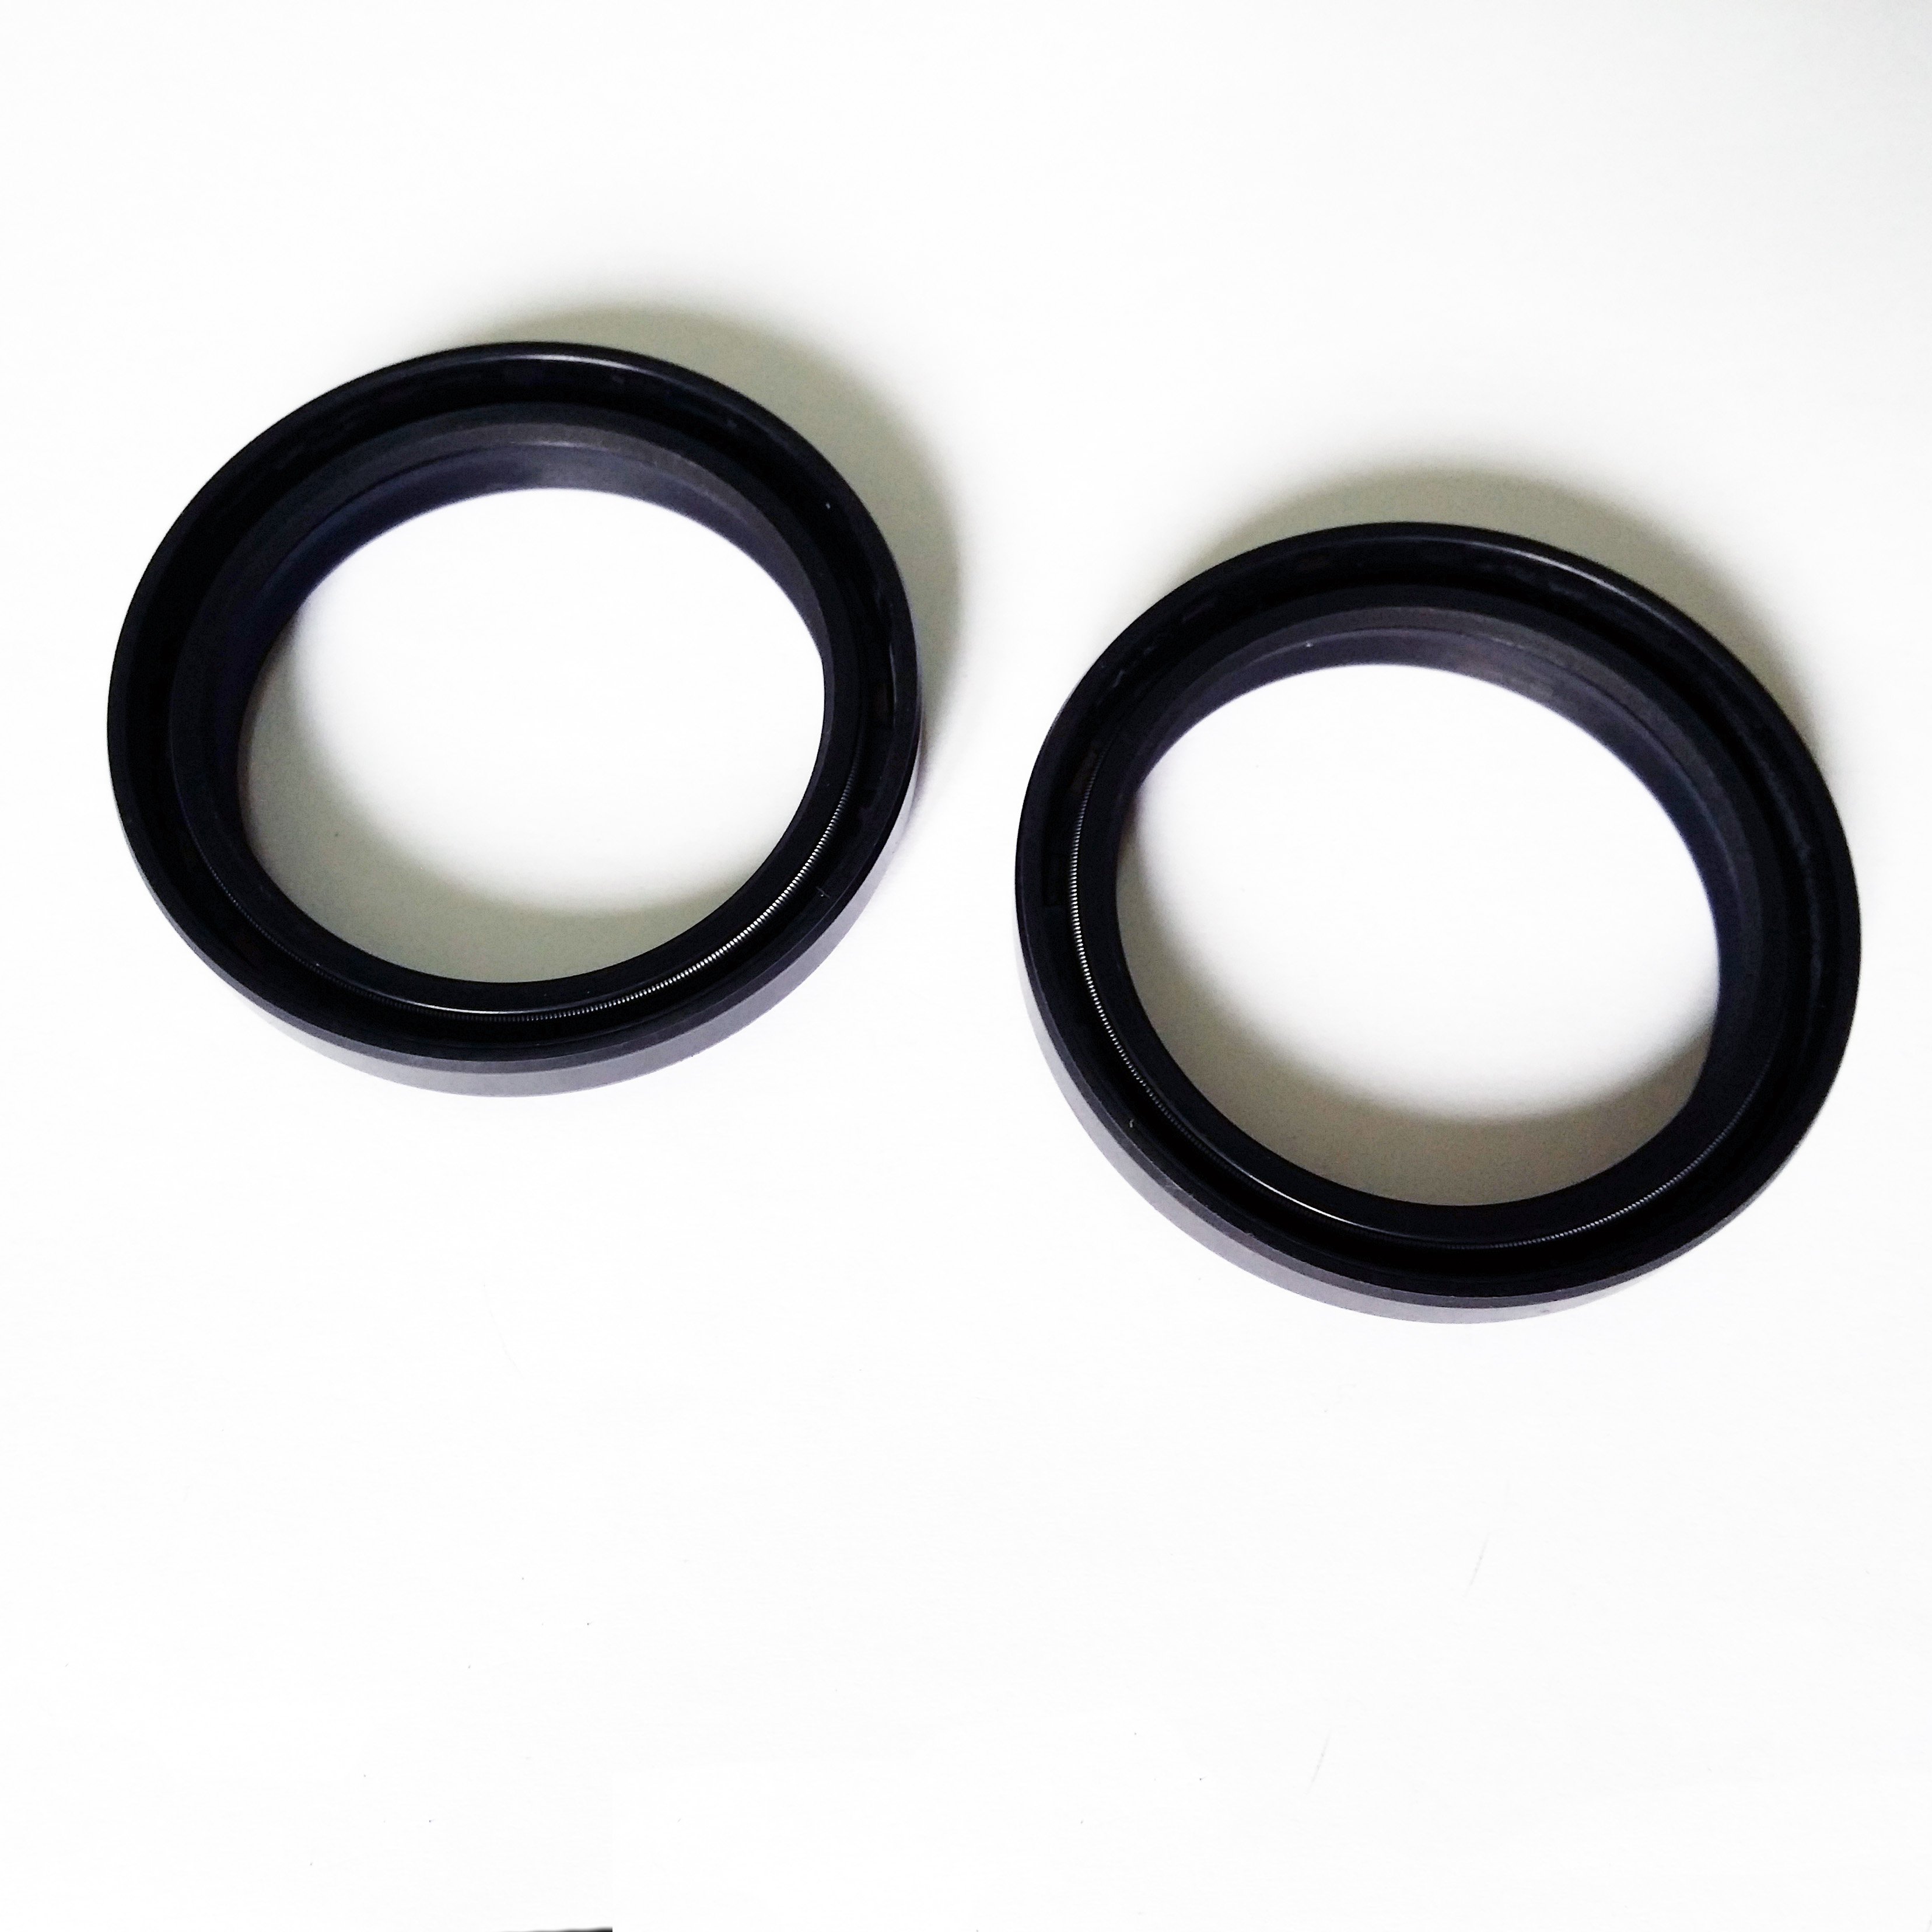 K-Tech Yamaha YZF750 1993-1996 NOK Front Fork Oil Seals 41x53x8/9.5mm